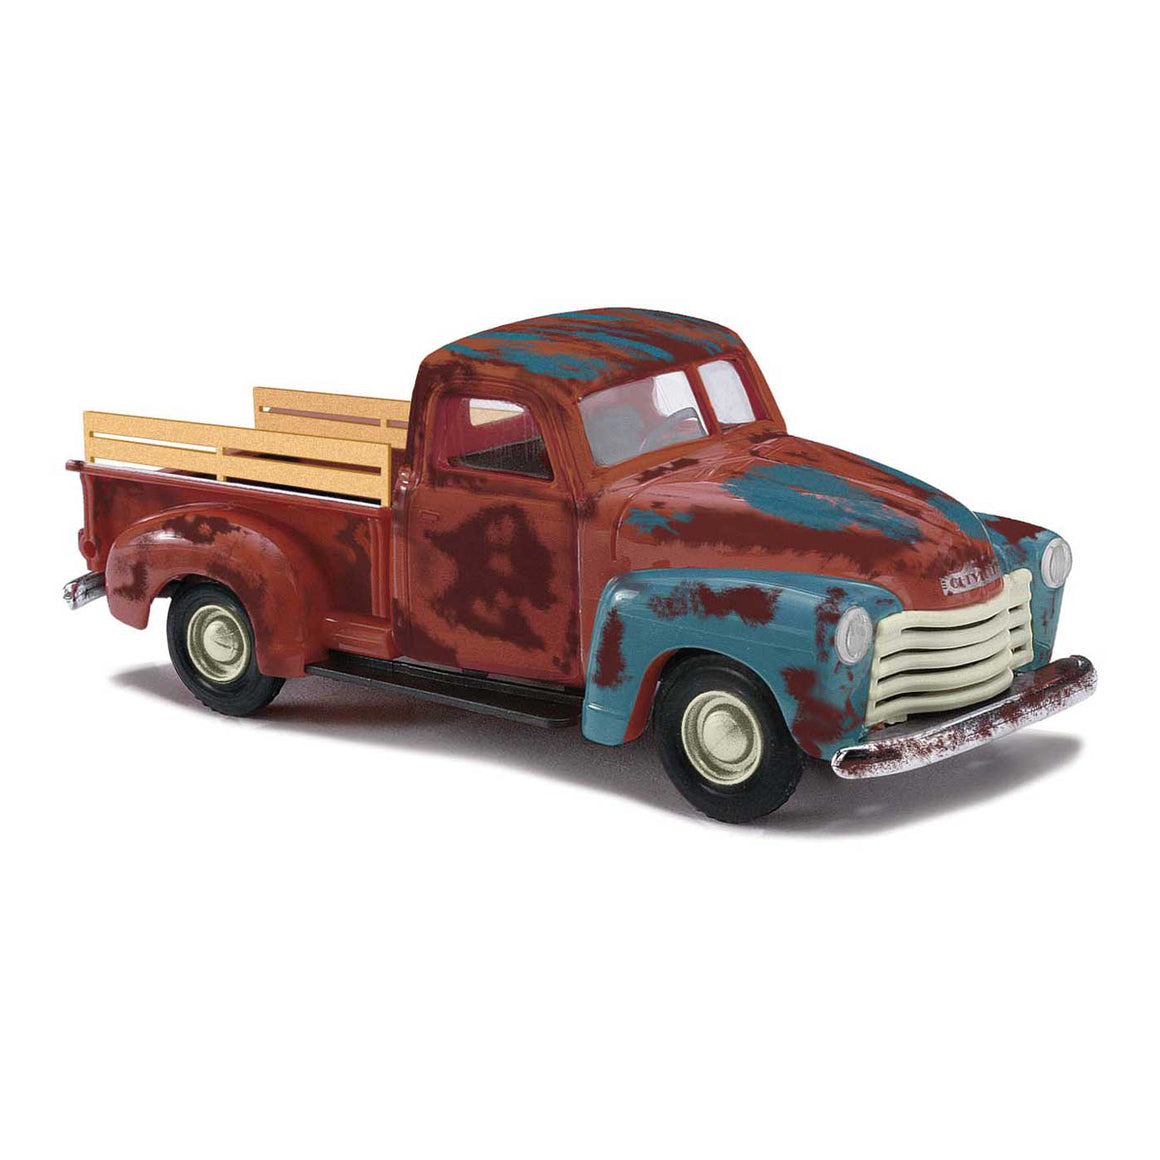 HO Scale: 1950 Chevrolet Pickup Truck